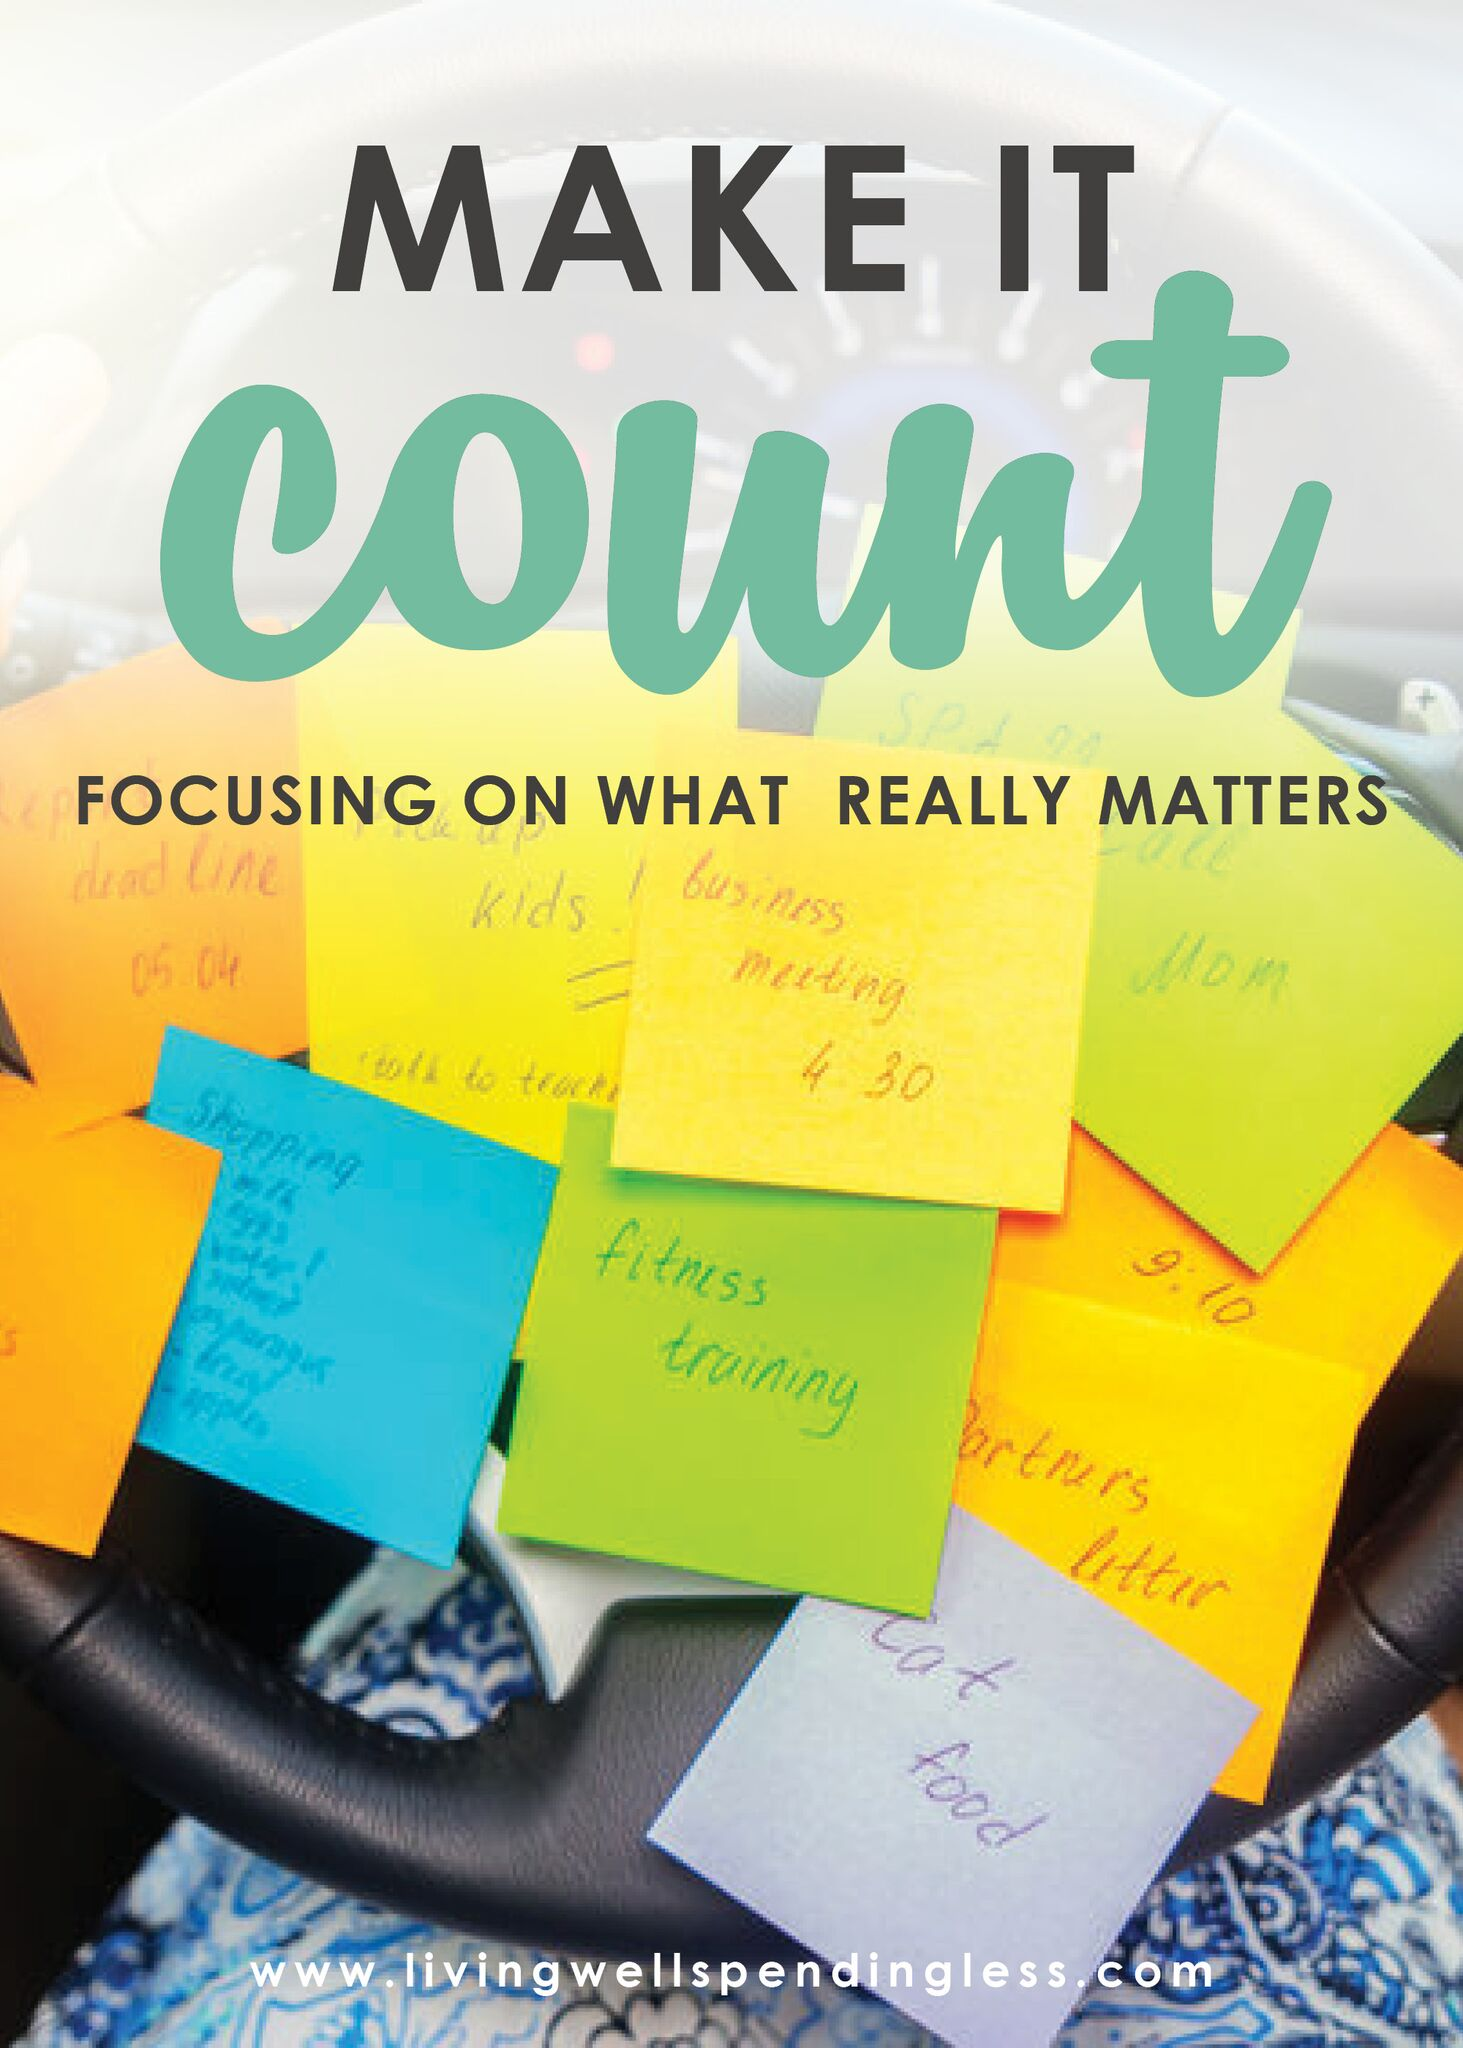 Be Sure to Make It Count ⎢ How to Focus on What Really Matters ⎢ Goal Setting ⎢ Intentional Living ⎢ Living Well ⎢ Living Well Planner ⎢ Make It Count ⎢ Priorities ⎢ Financial Freedom | Focus